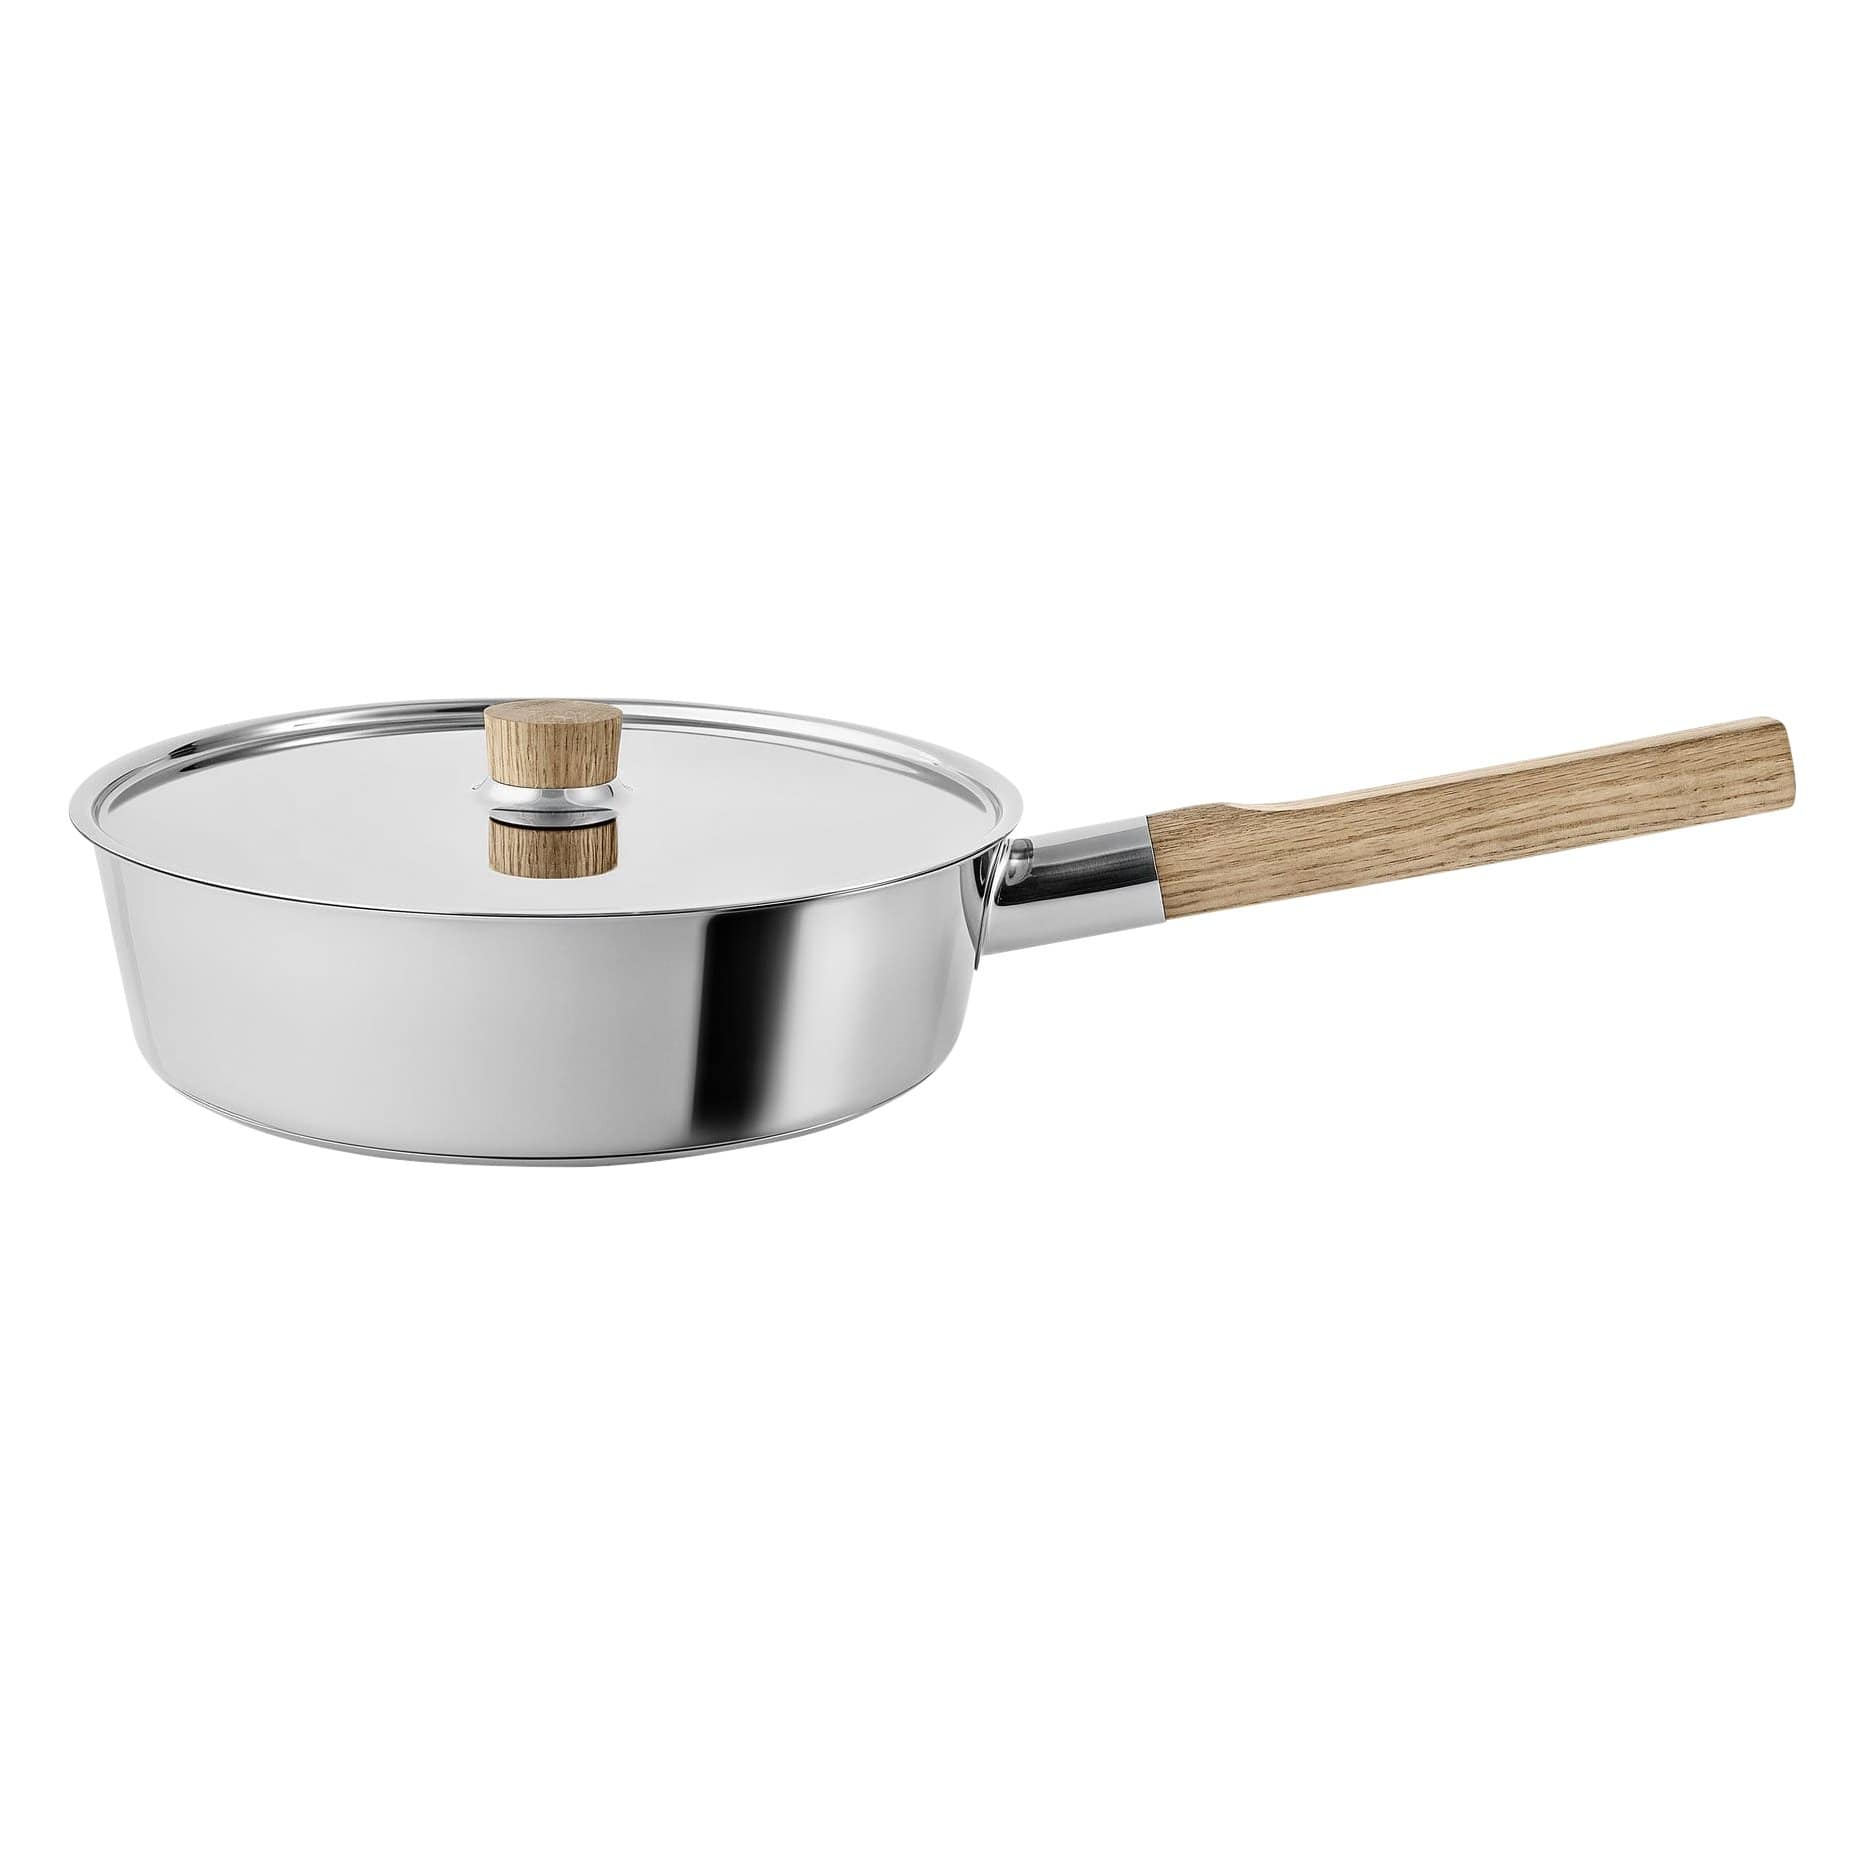 Nordic Kitchen Stainless Steel Sauté Pan with Lid